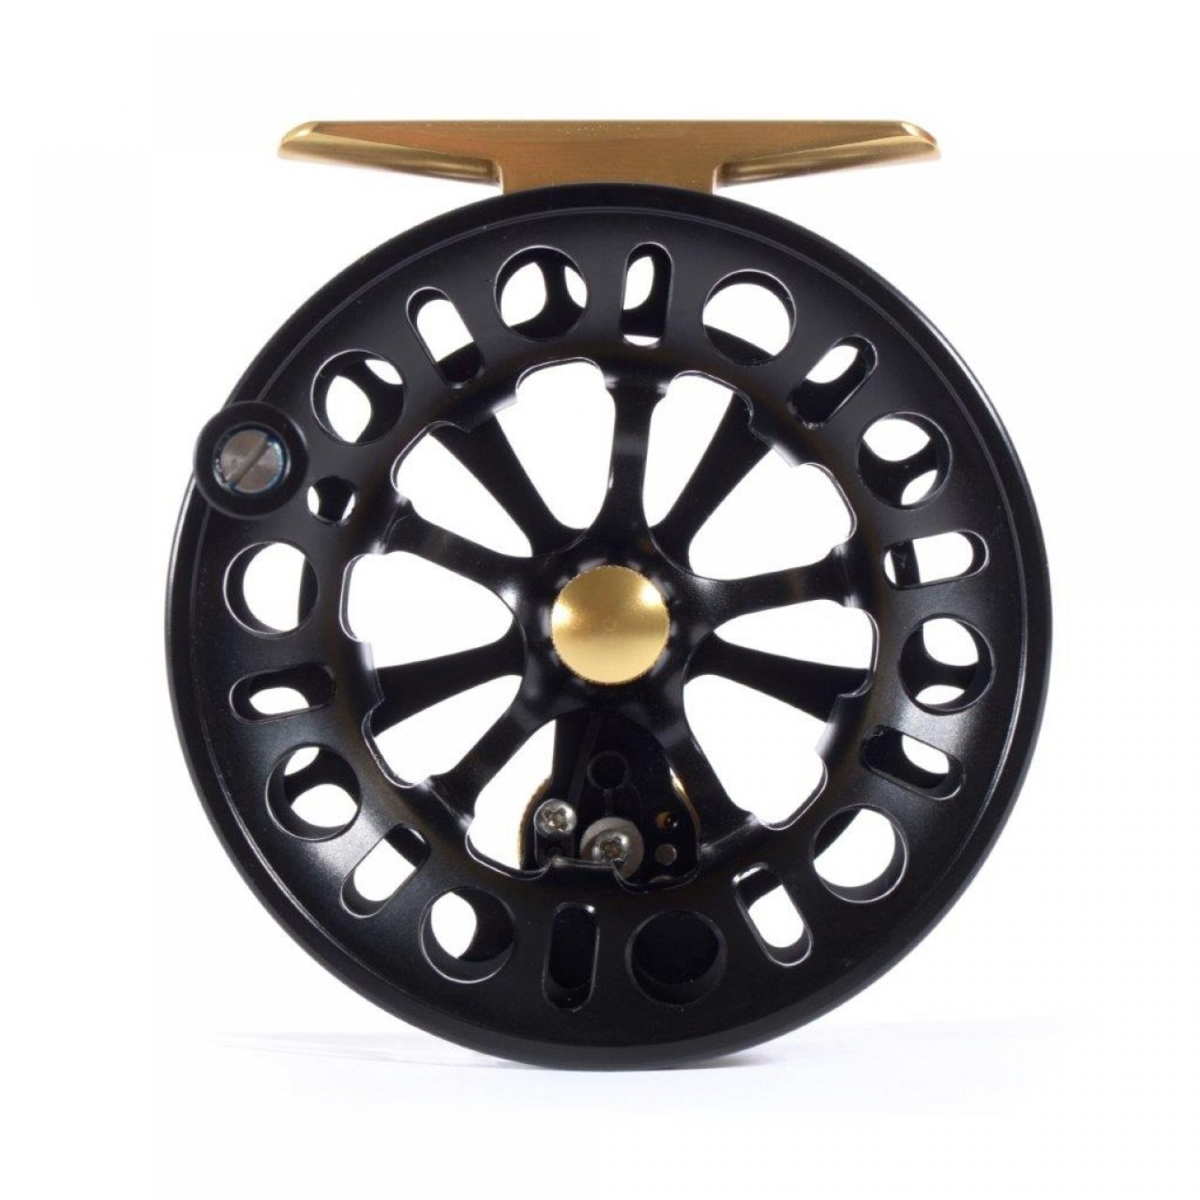 HANÁK Competition Superlight II 24